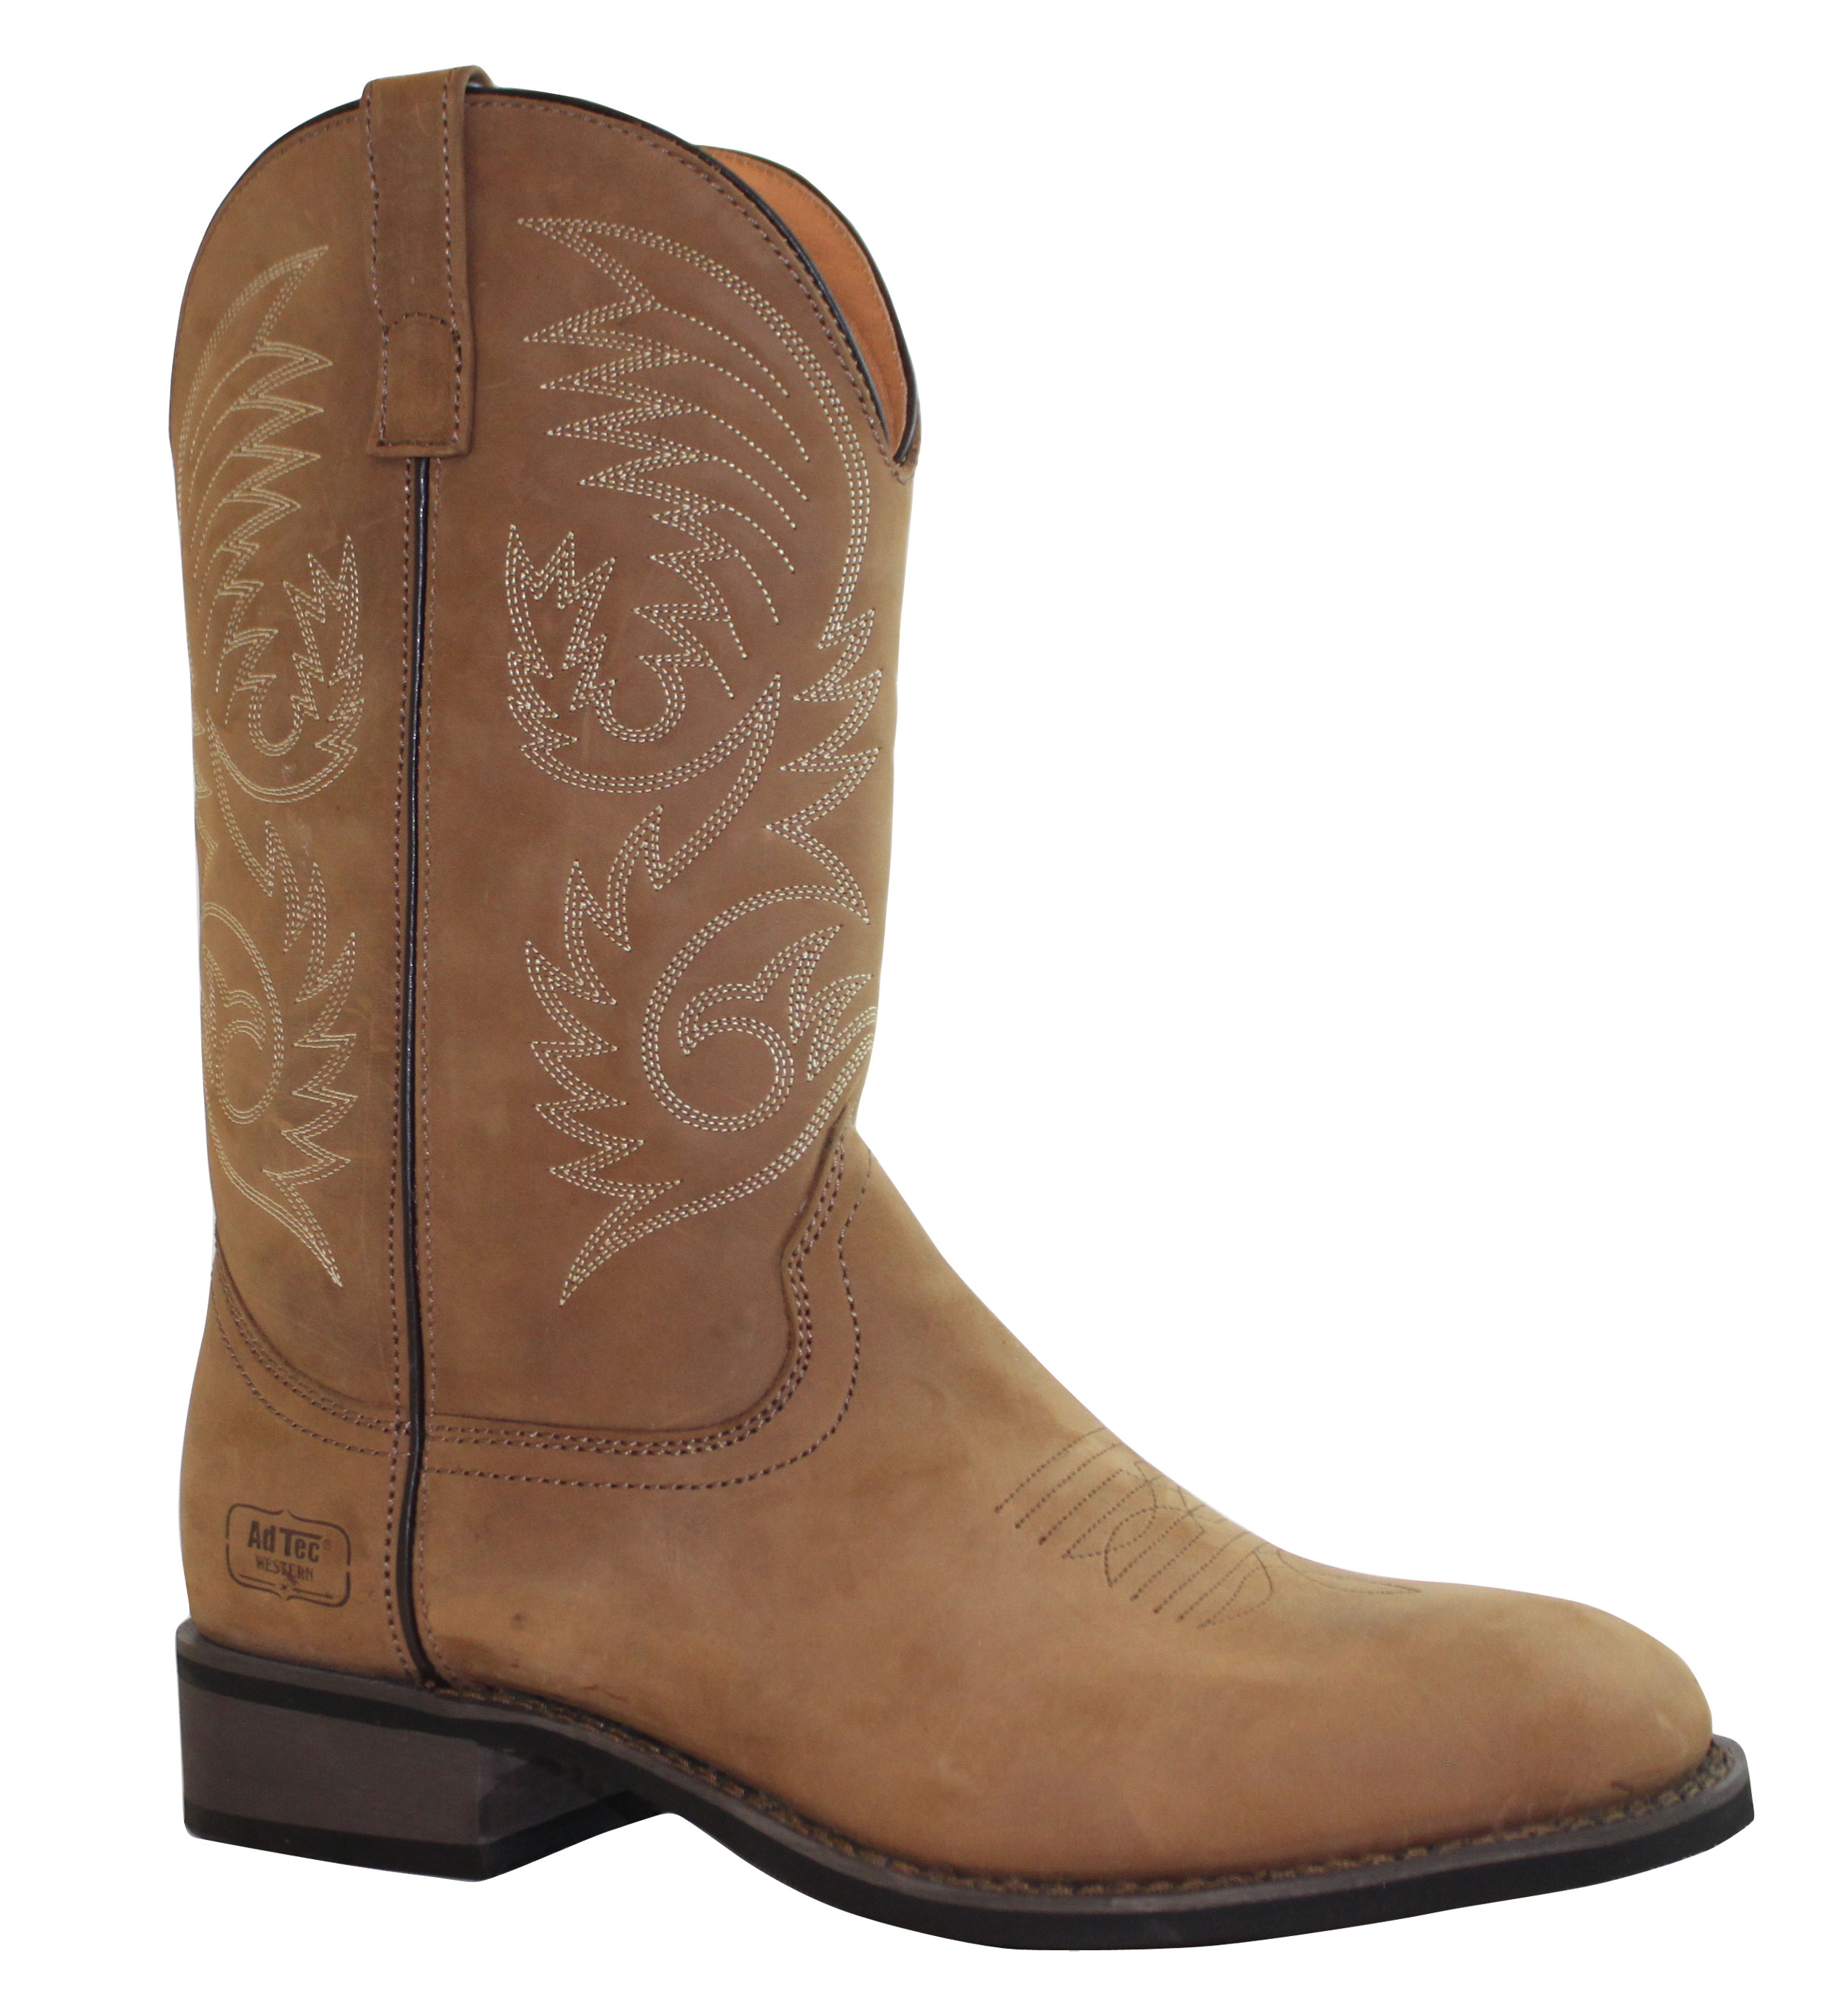 "Adtec Men's 11"" Round Toe Leather Western Boot, Brown - 8.5 M"